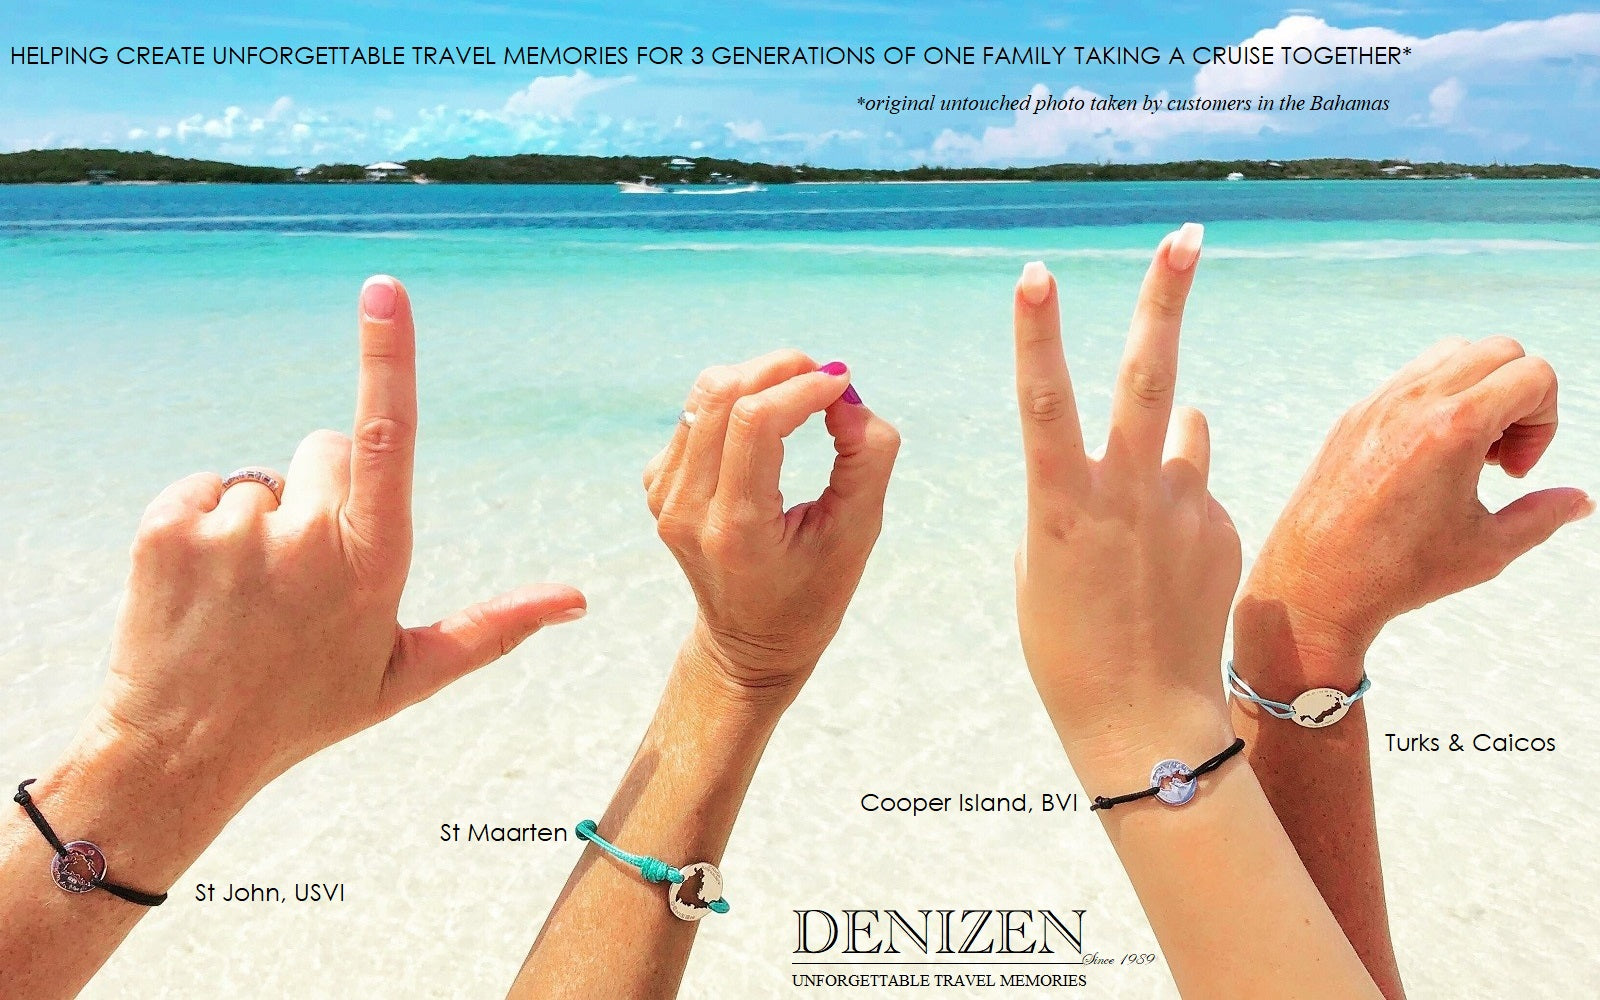 DENIZEN jewelry of the Caribbean islands